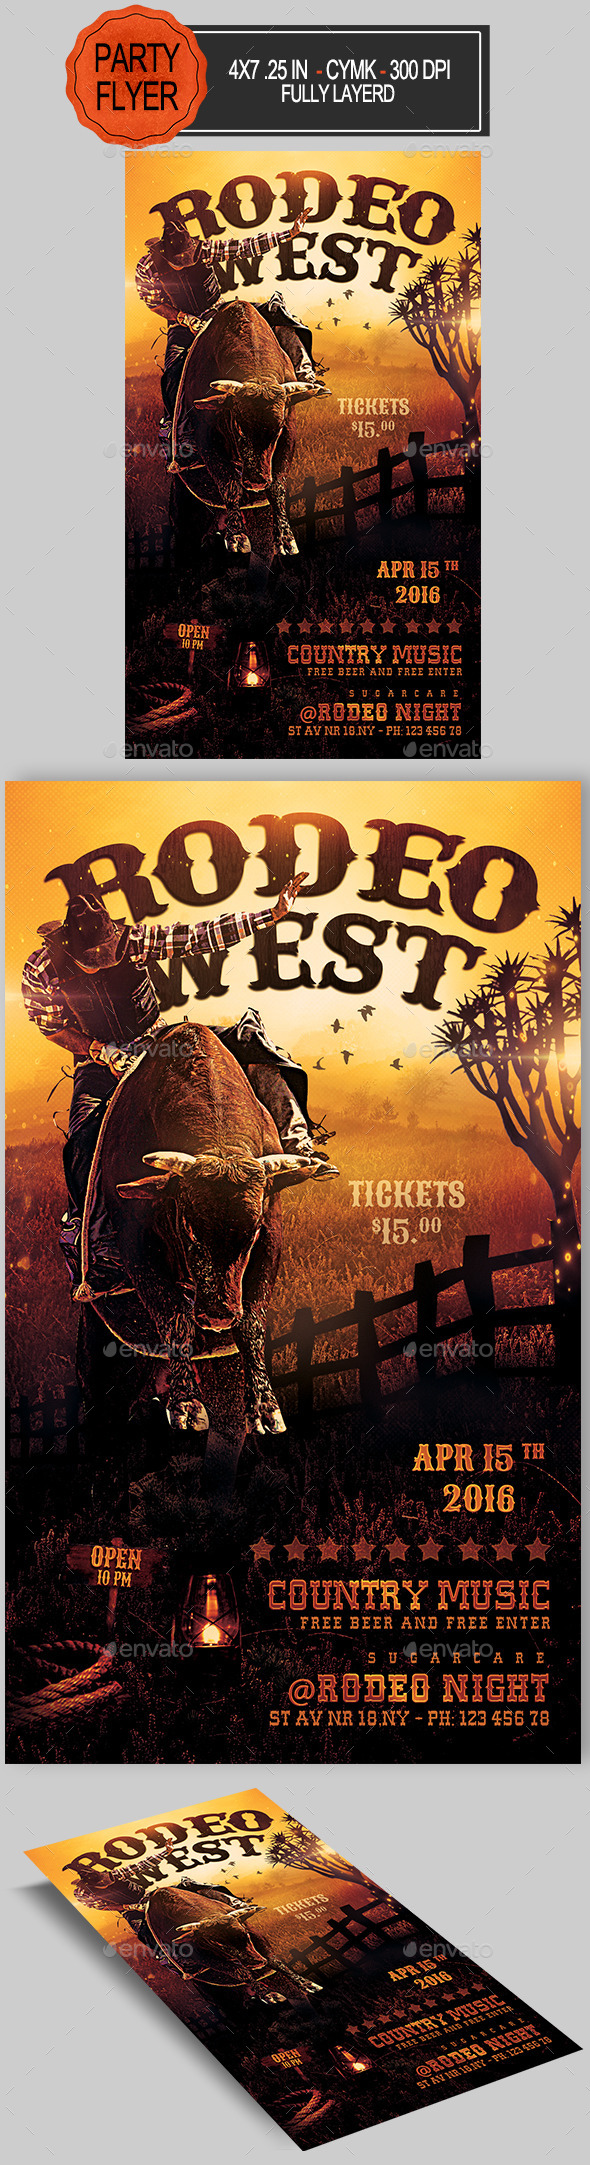 Rodeo Flyer Template Free from previews.customer.envatousercontent.com